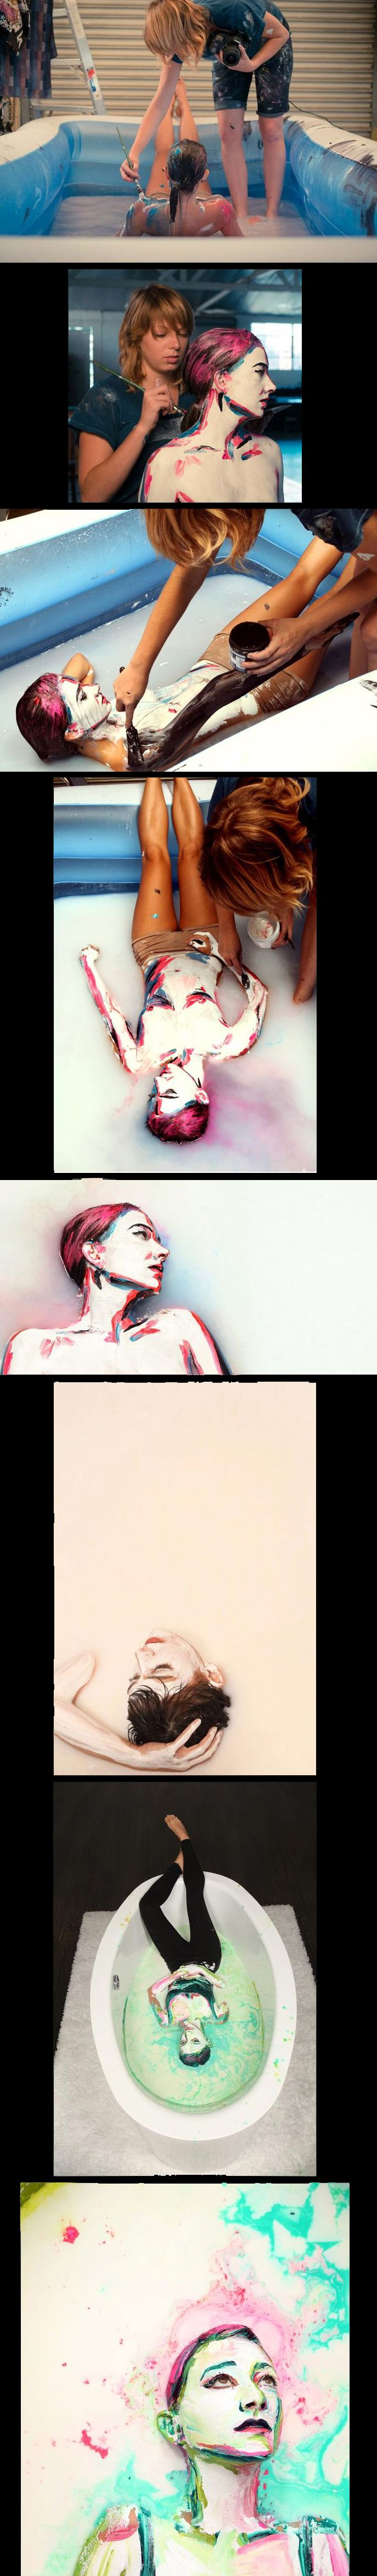 The Human Water Color Portrait [8 Pics] | I Am Bored ...BTW,Please Check this out: http://artcaffeine.imobileappsys.com